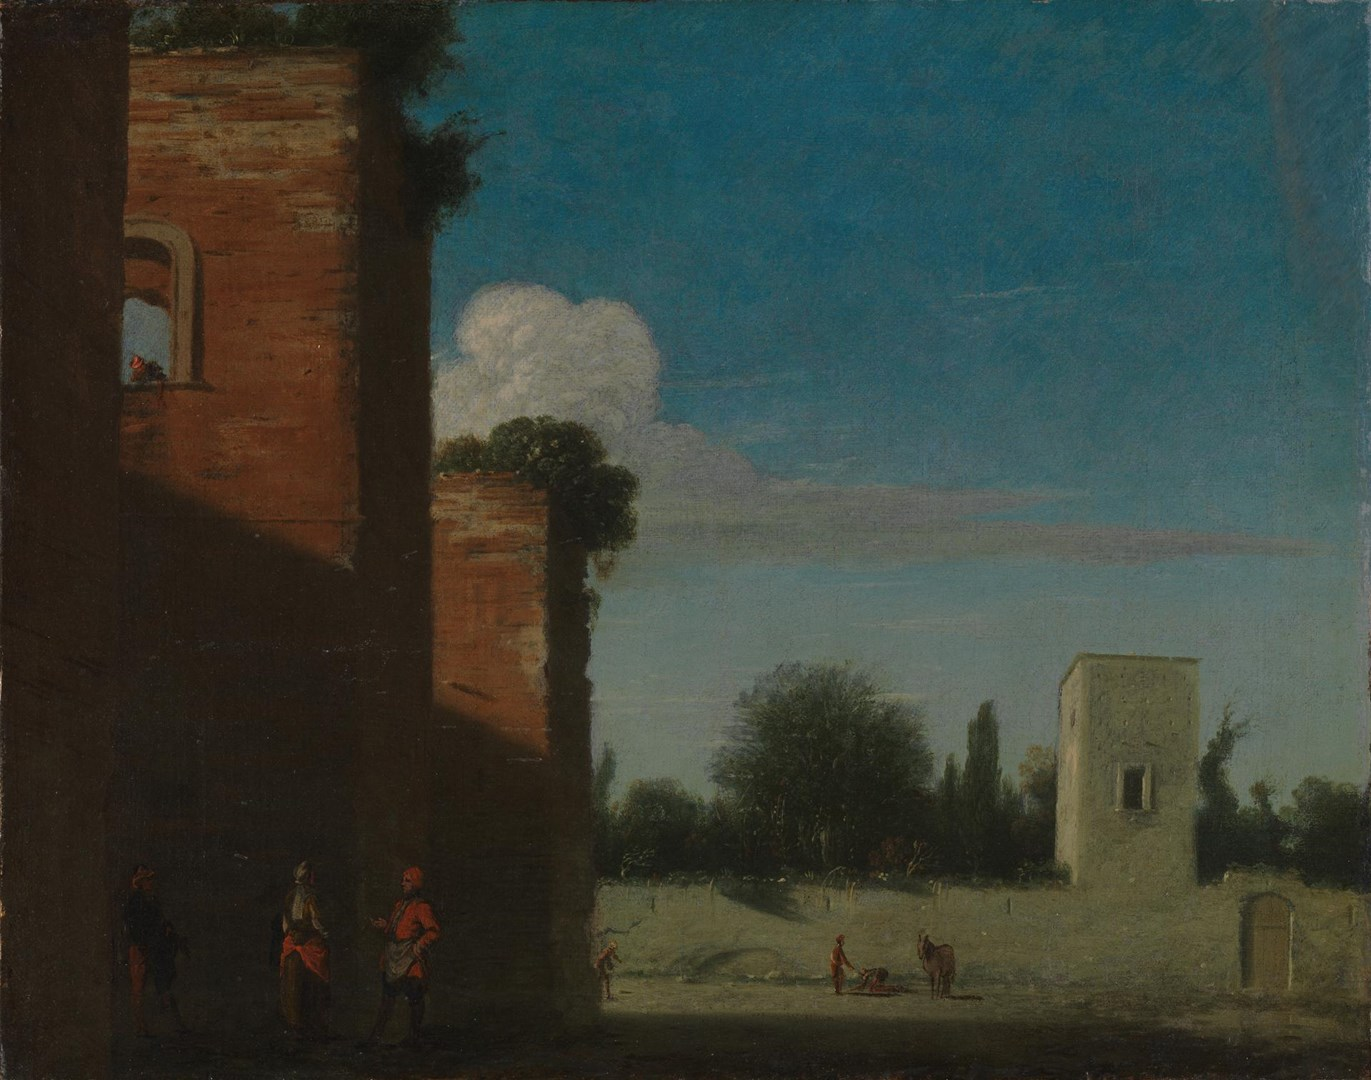 The Walls of Rome by Goffredo Wals